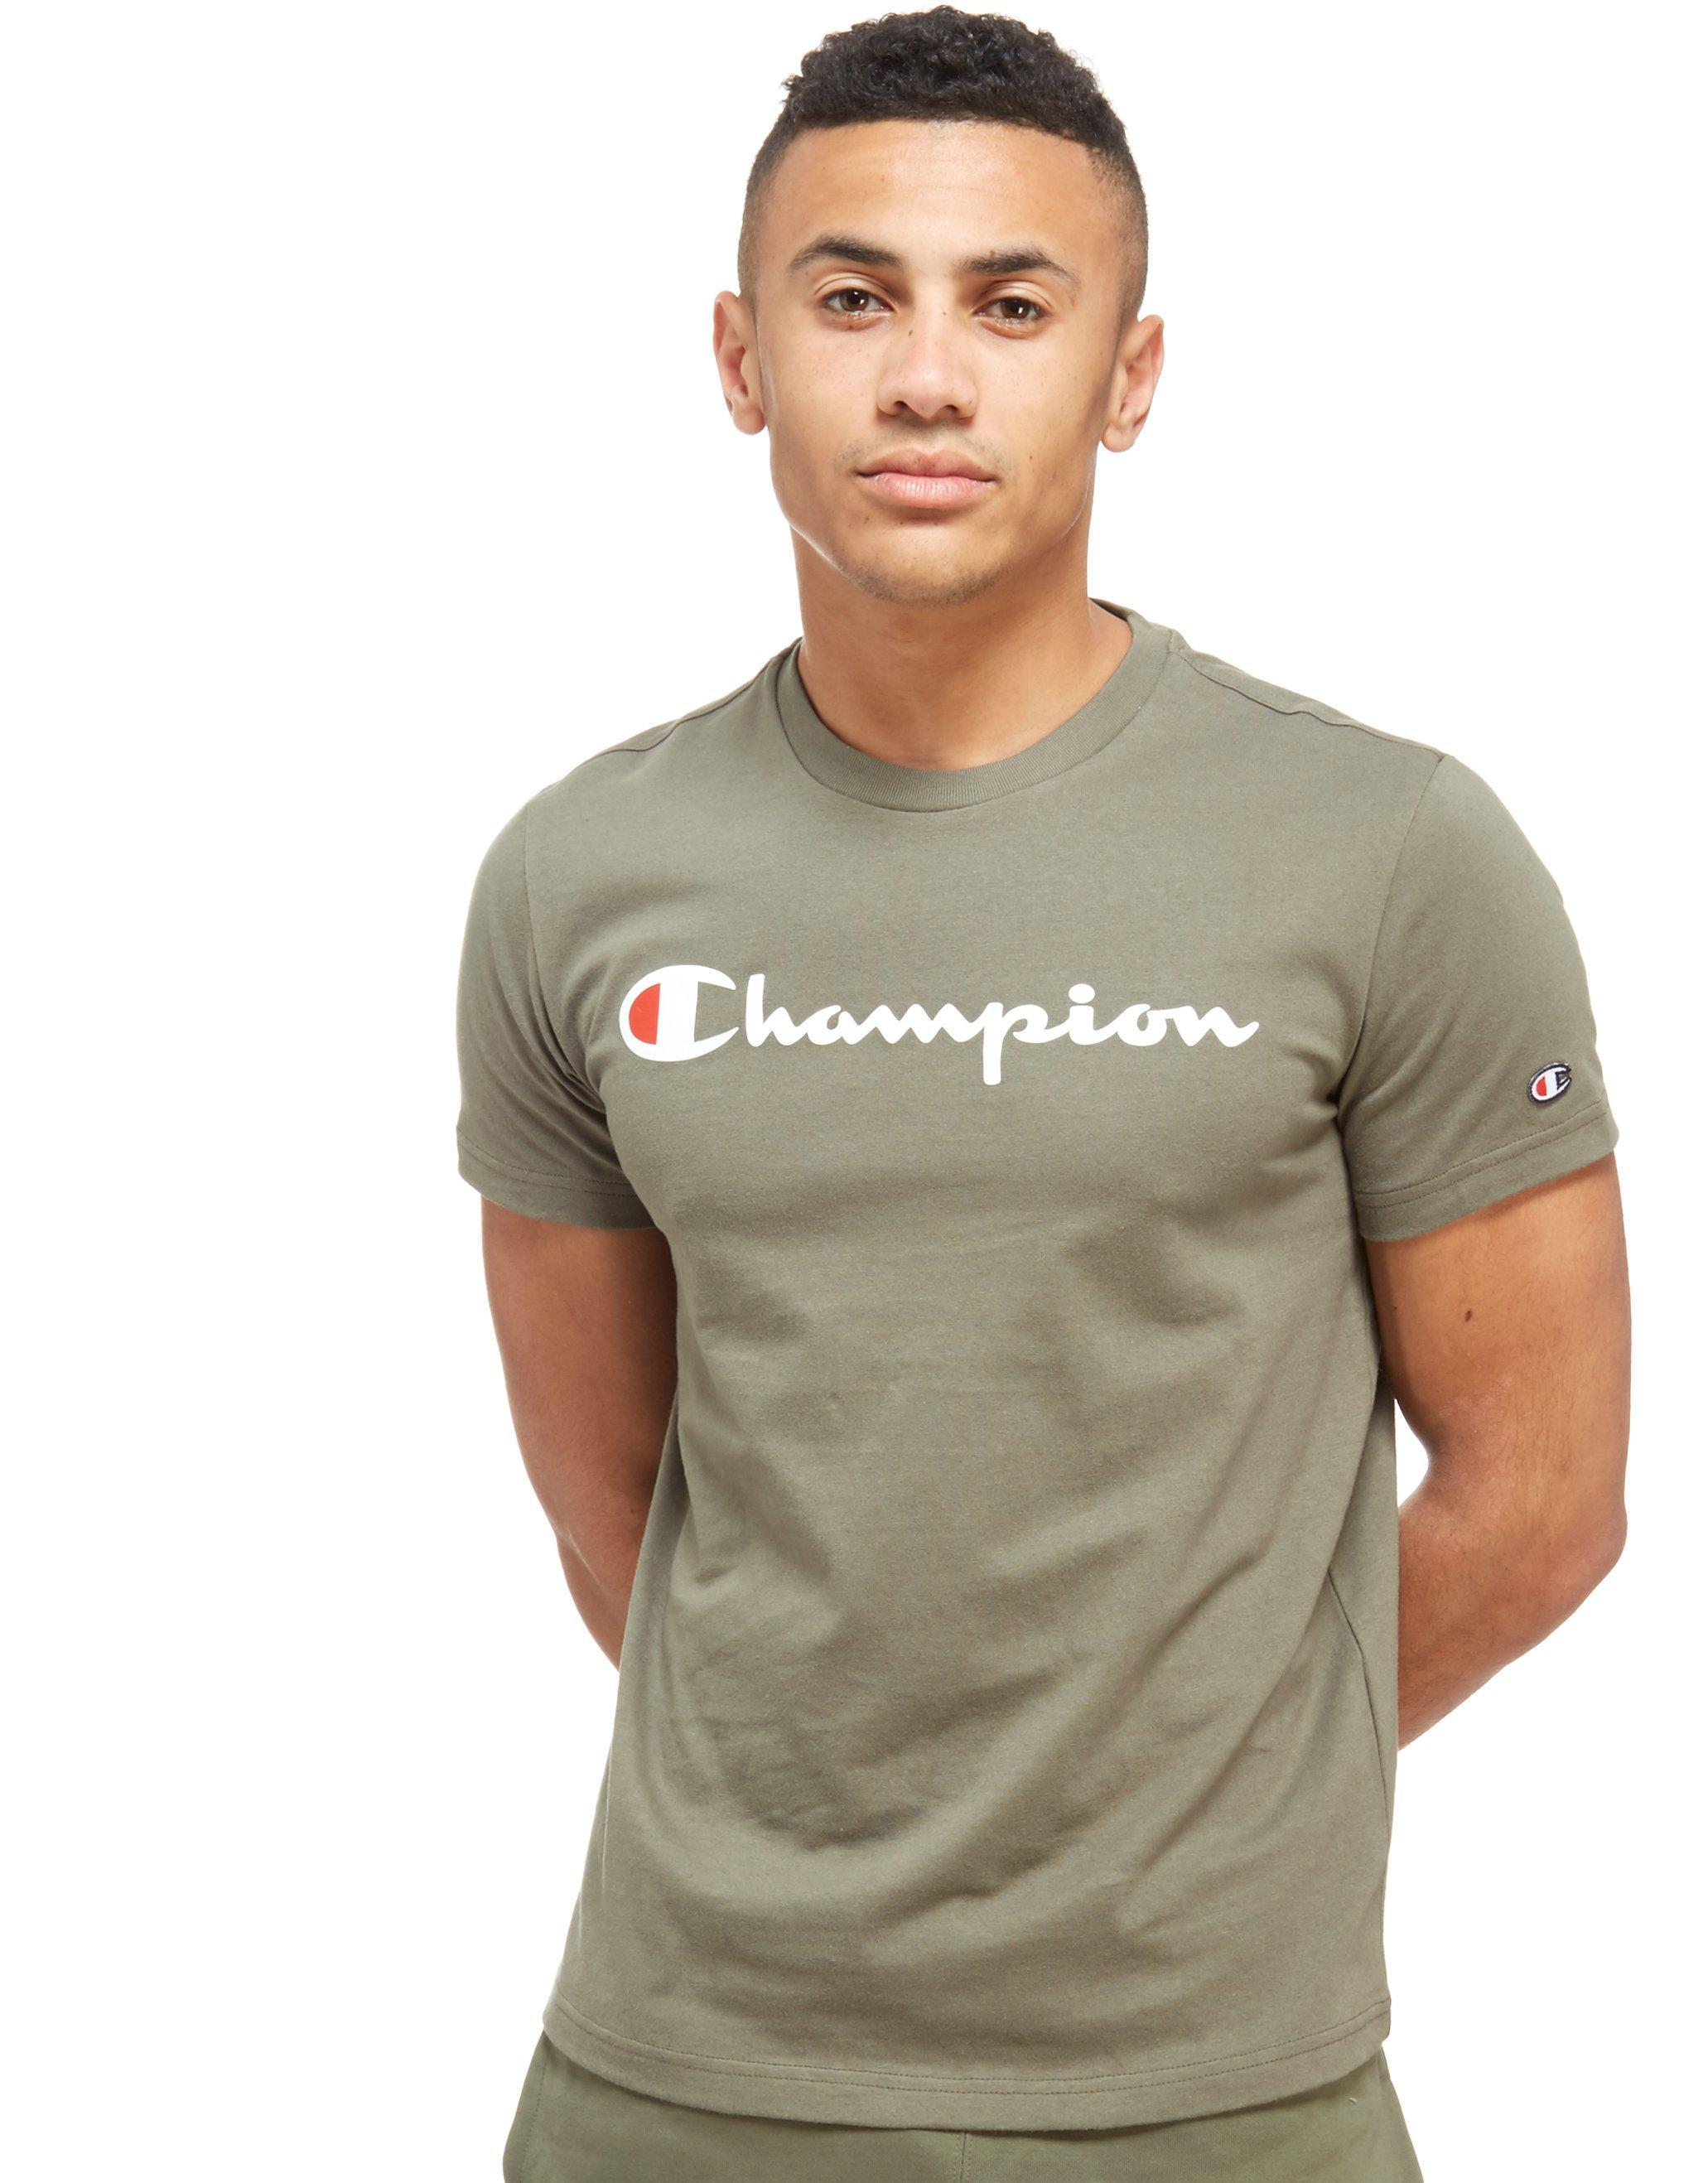 97c363d40c97 Champion Core Script T-shirt in Green for Men - Lyst